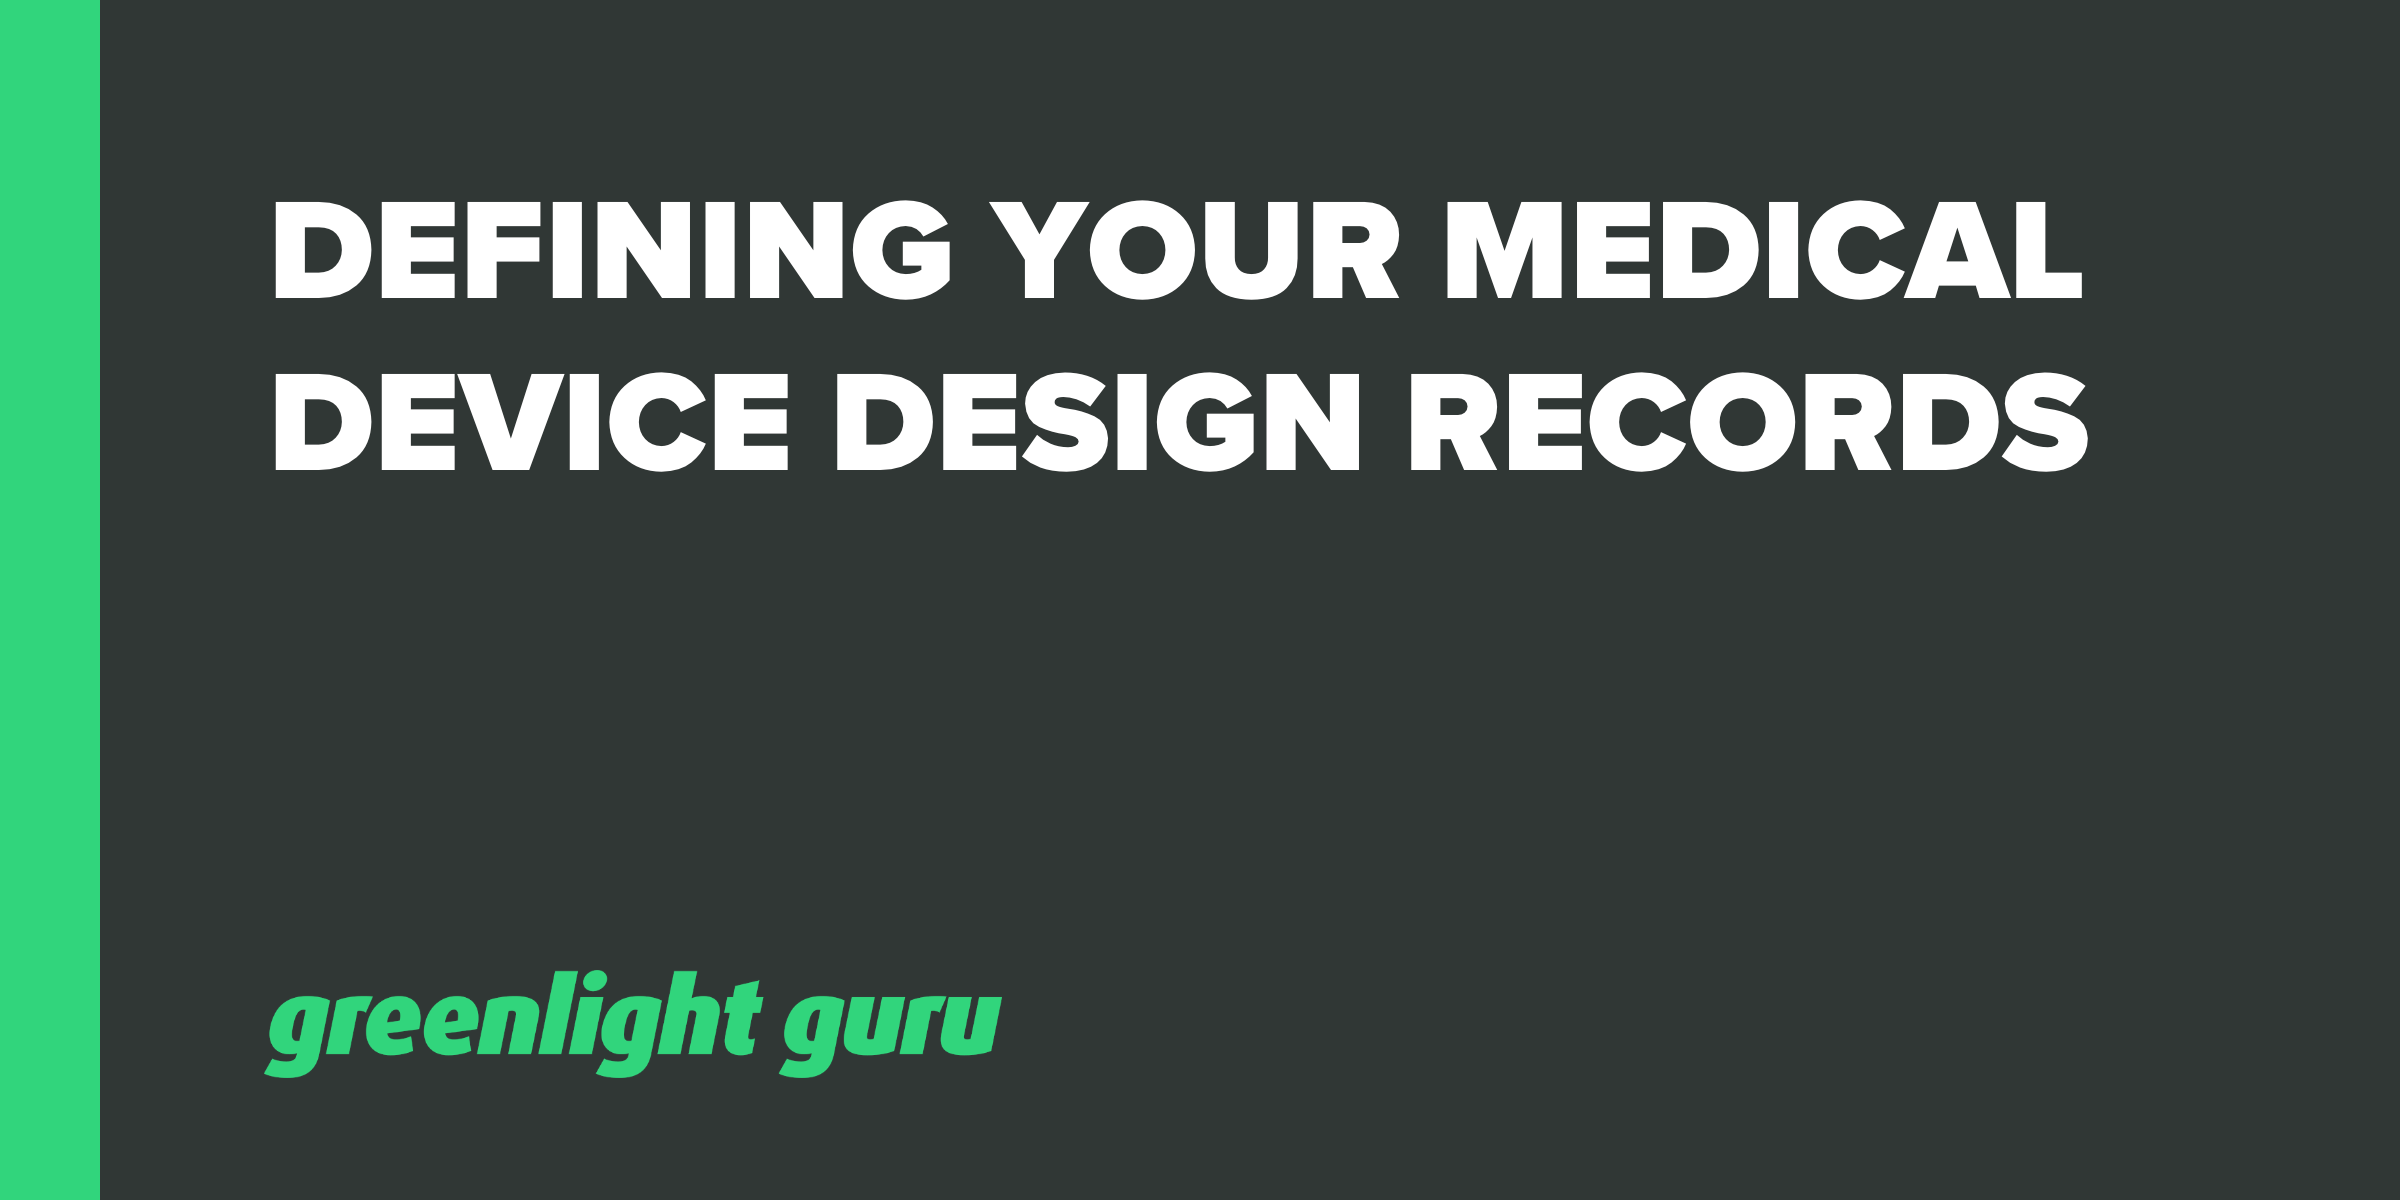 Defining your medical device design records